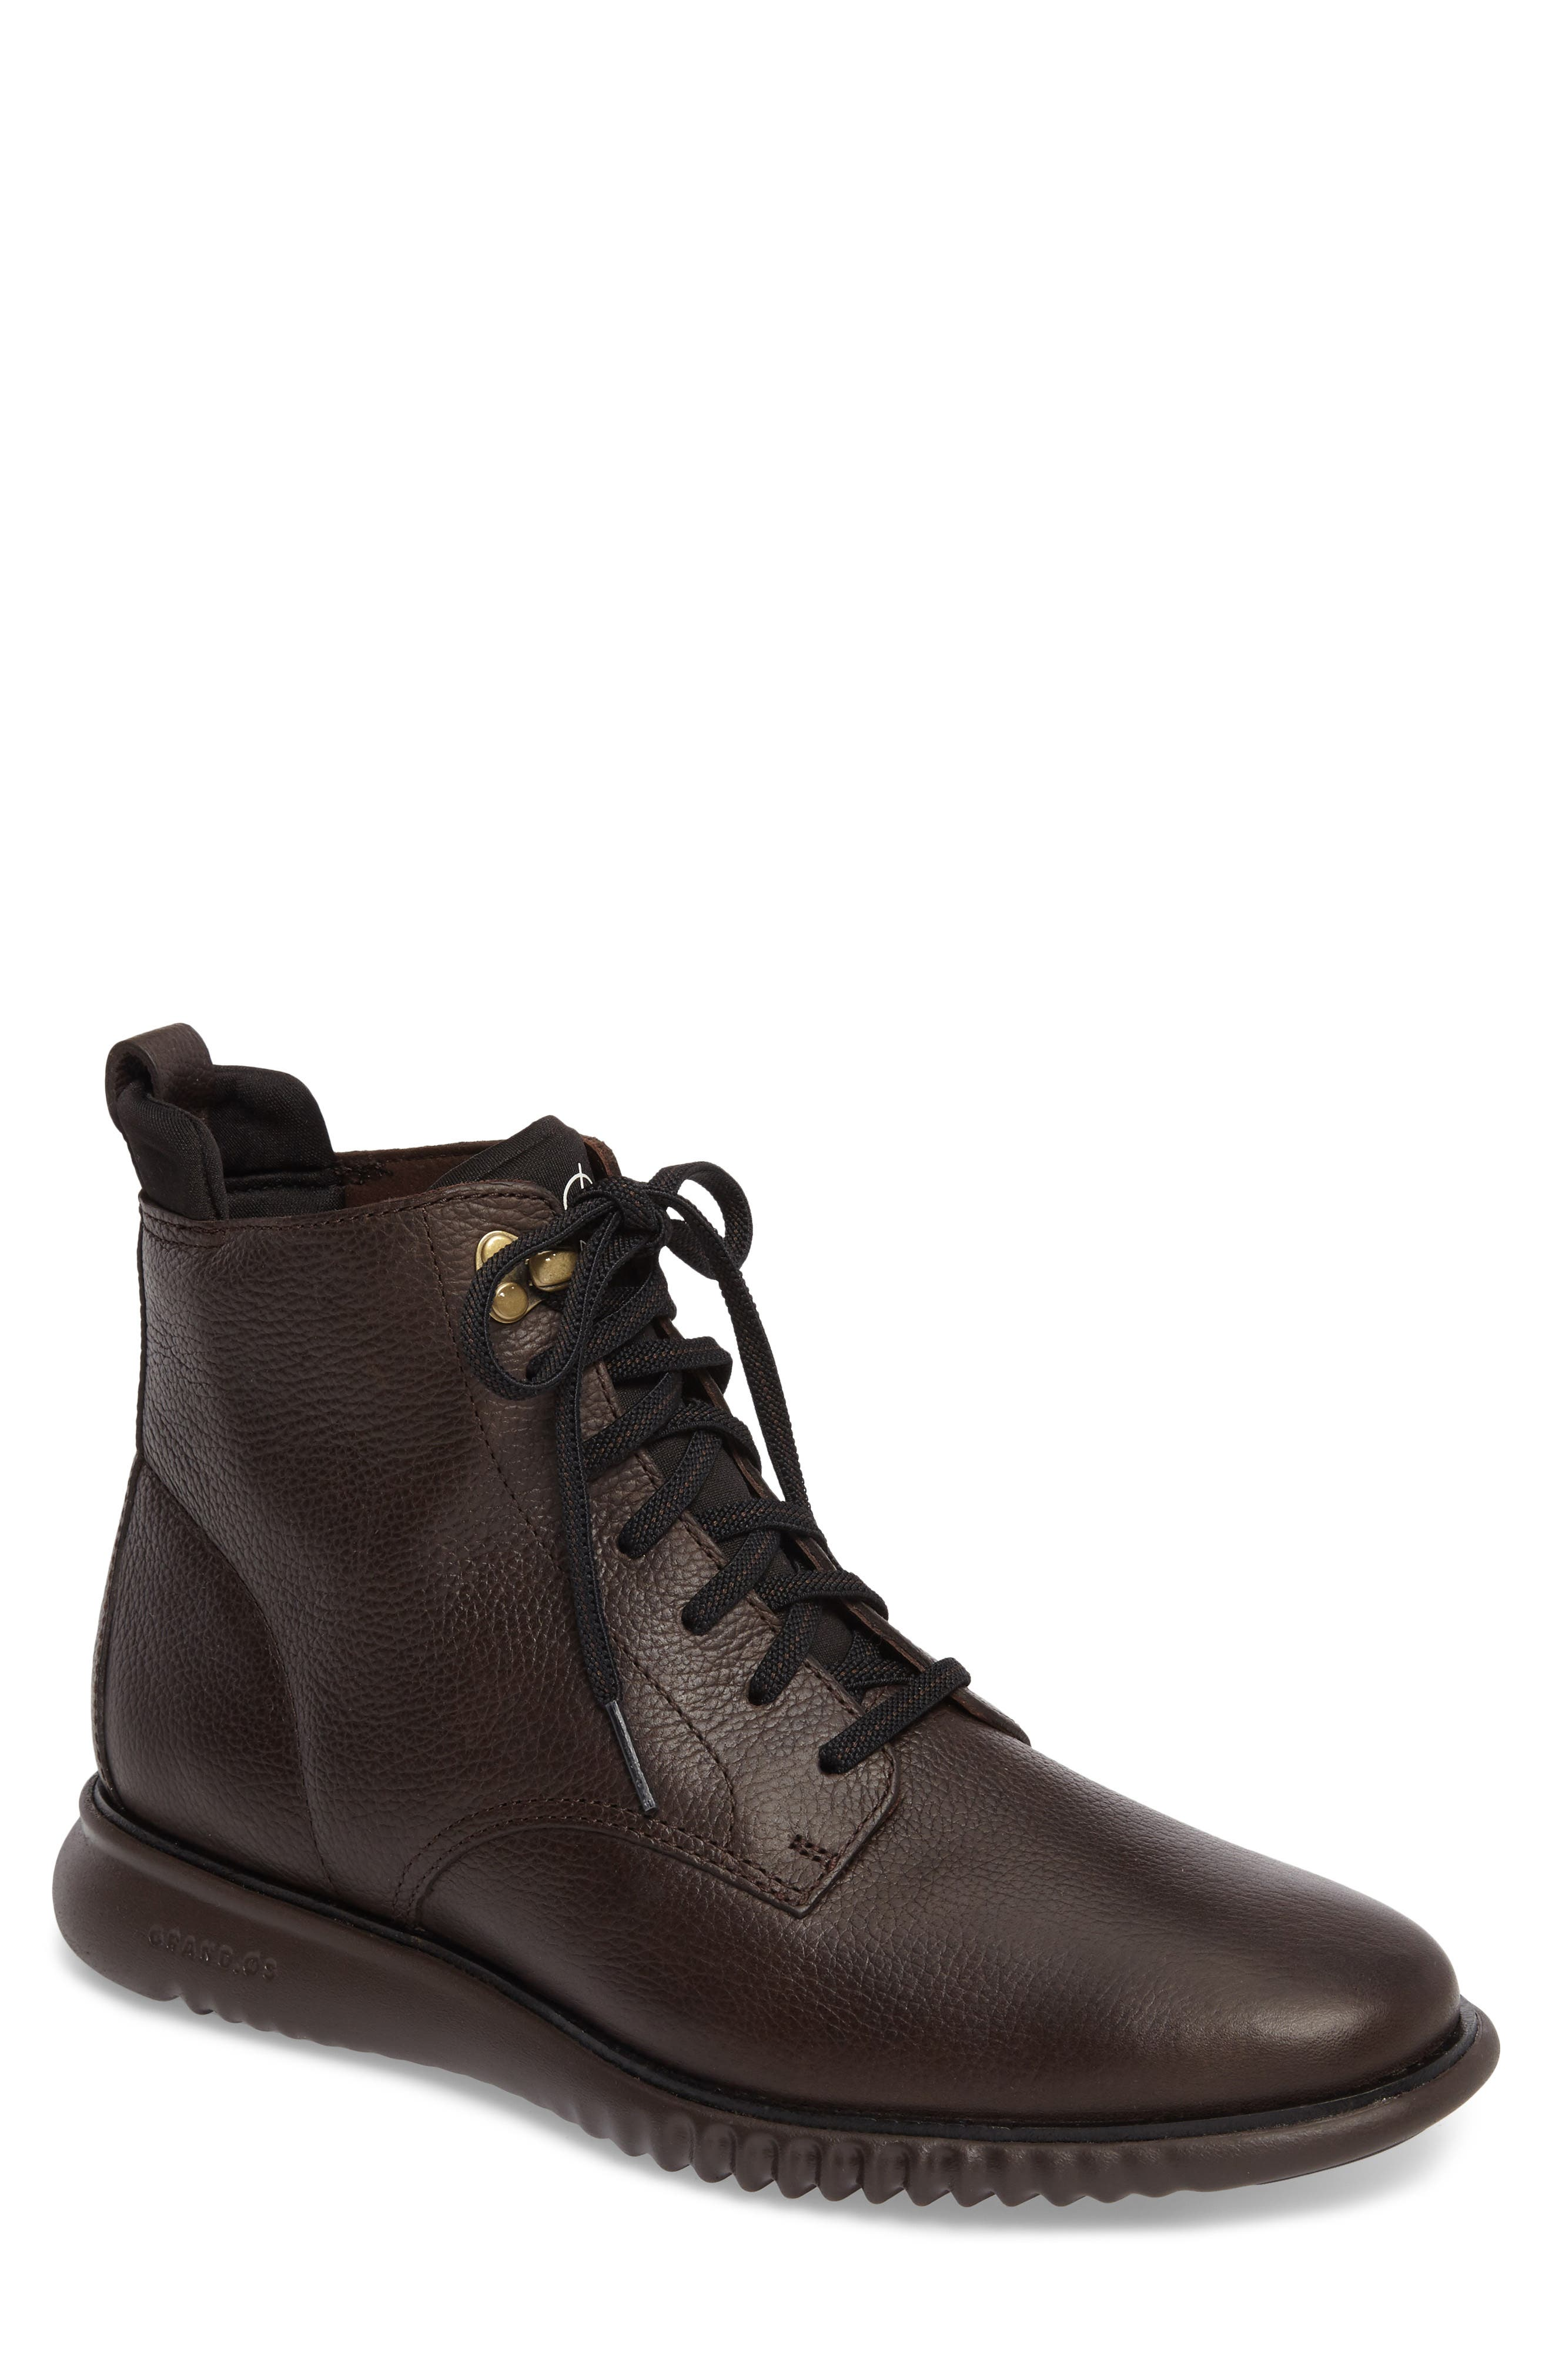 Cole Haan 2.zerogrand Waterproof Boot, Brown